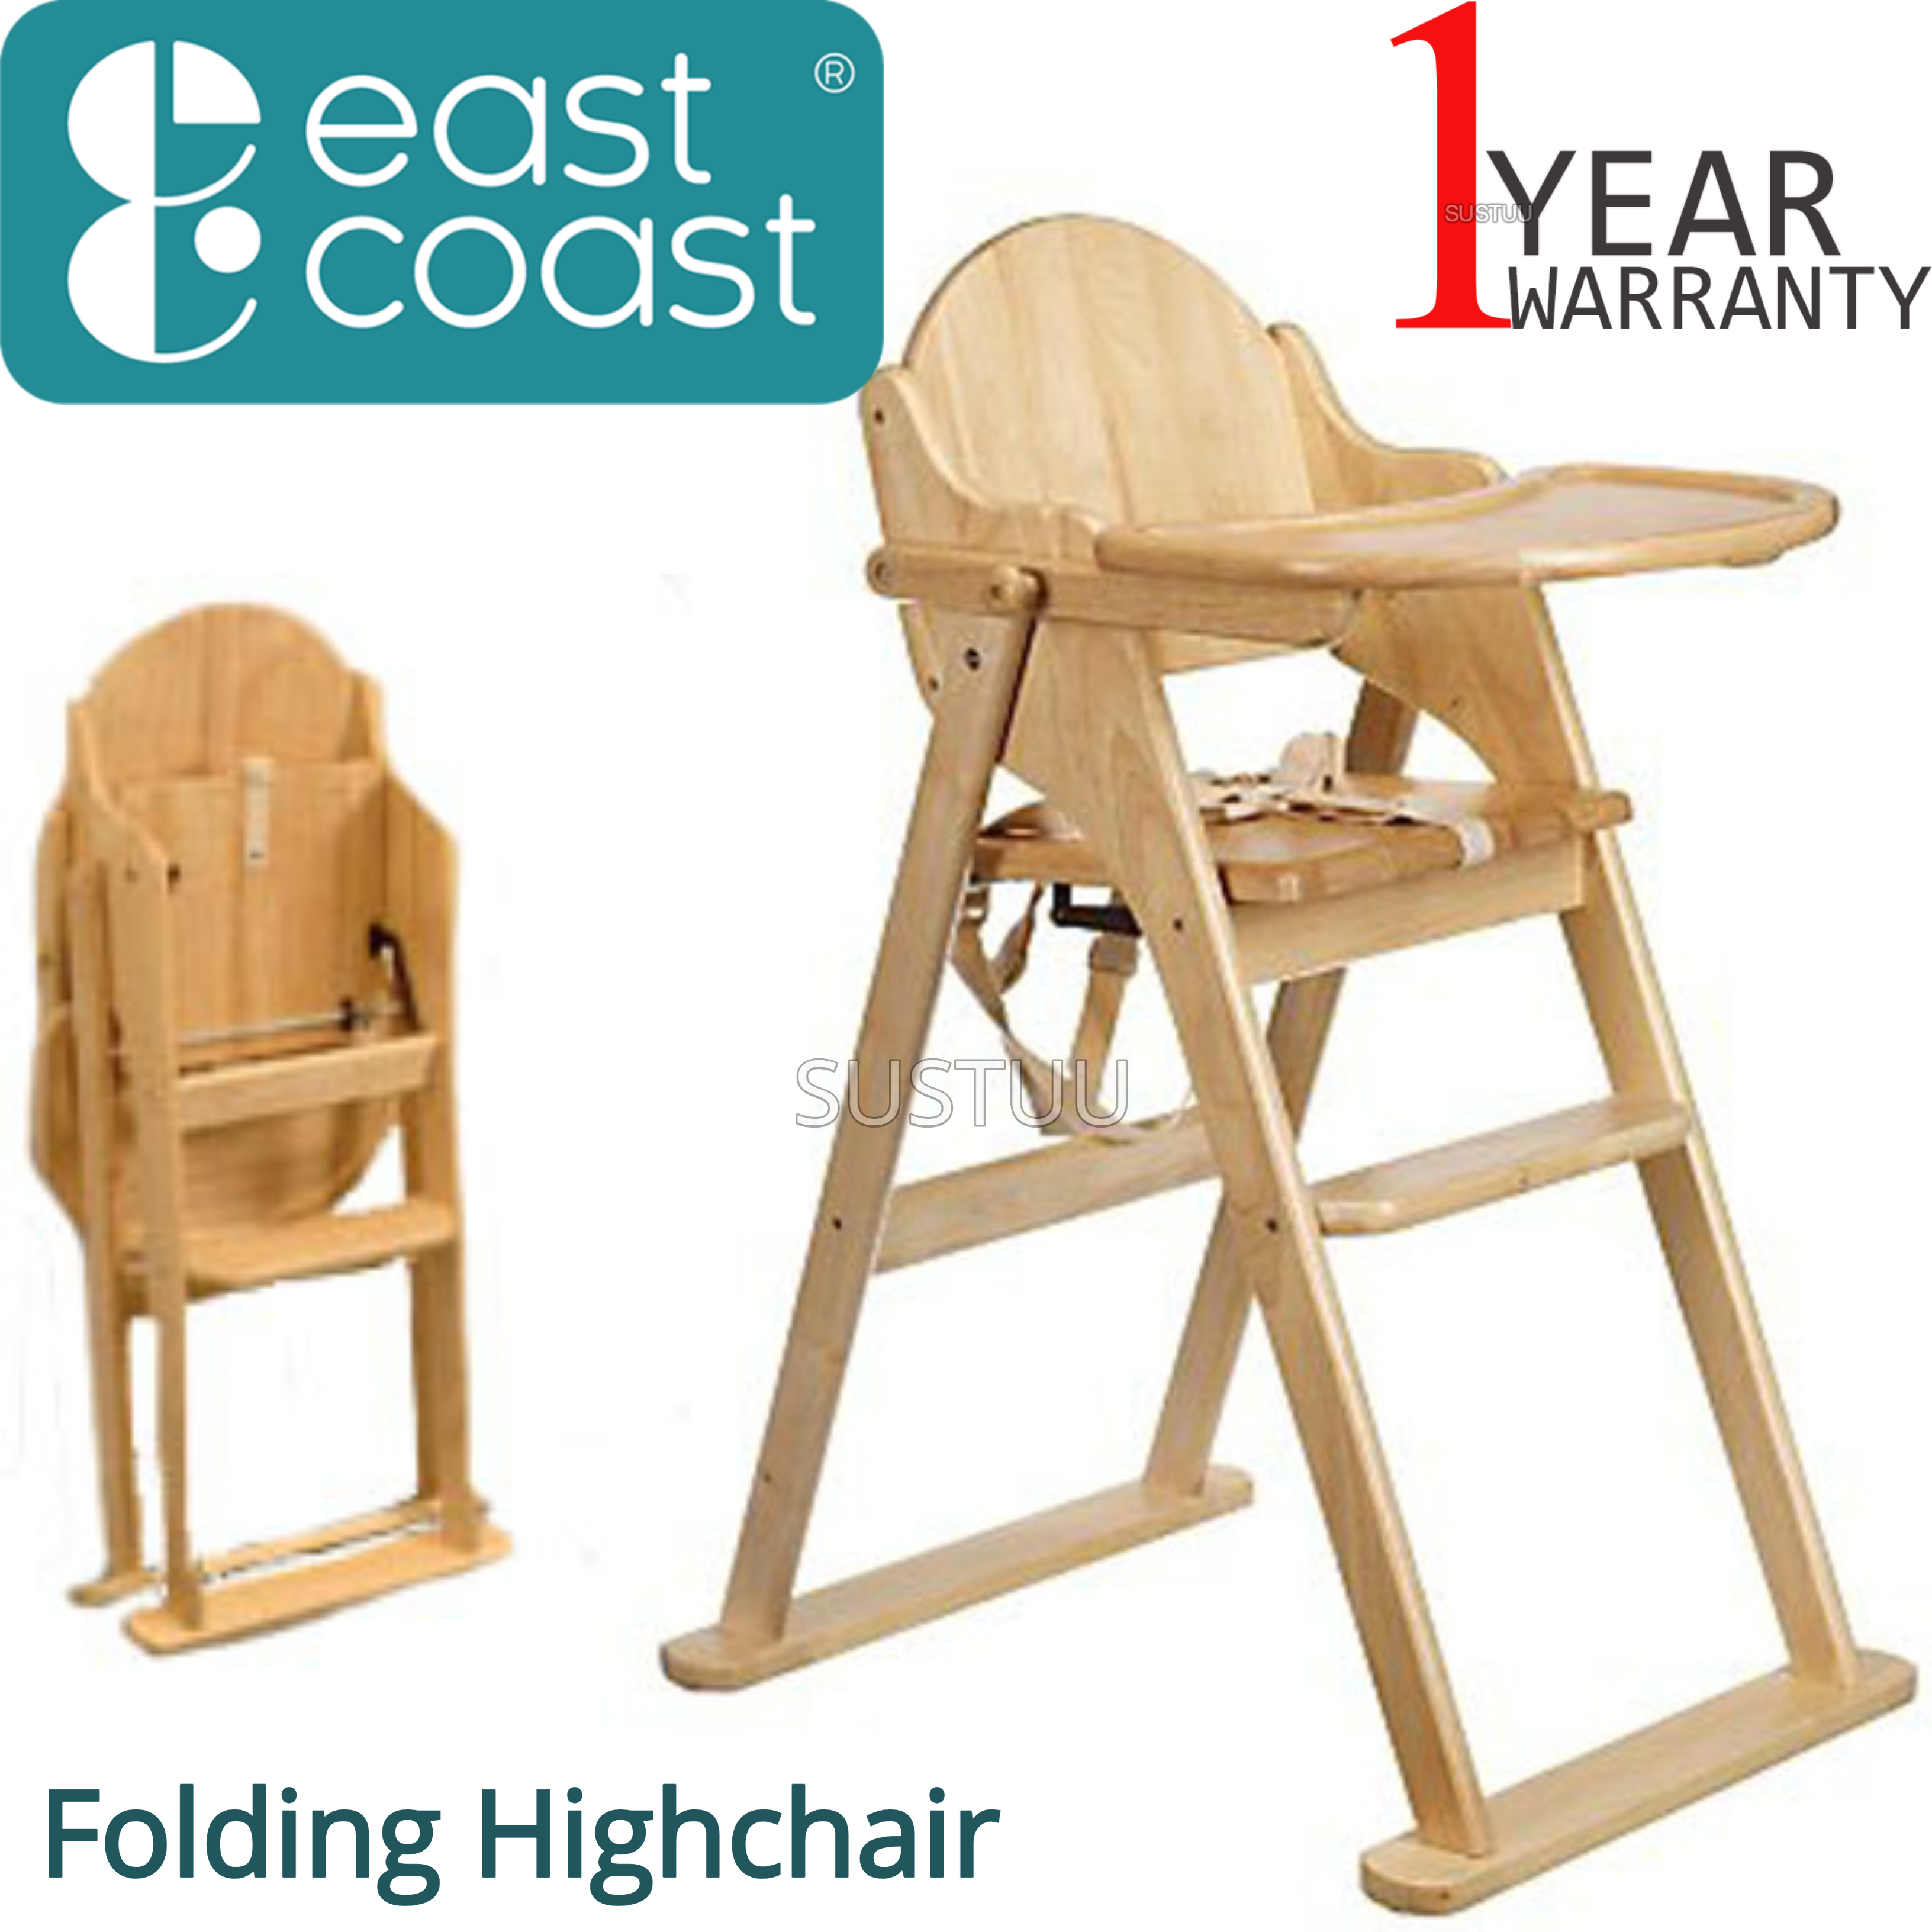 East Coast Folding Highchair | Kids Wooden Chair With Safety harness | Easy Storage